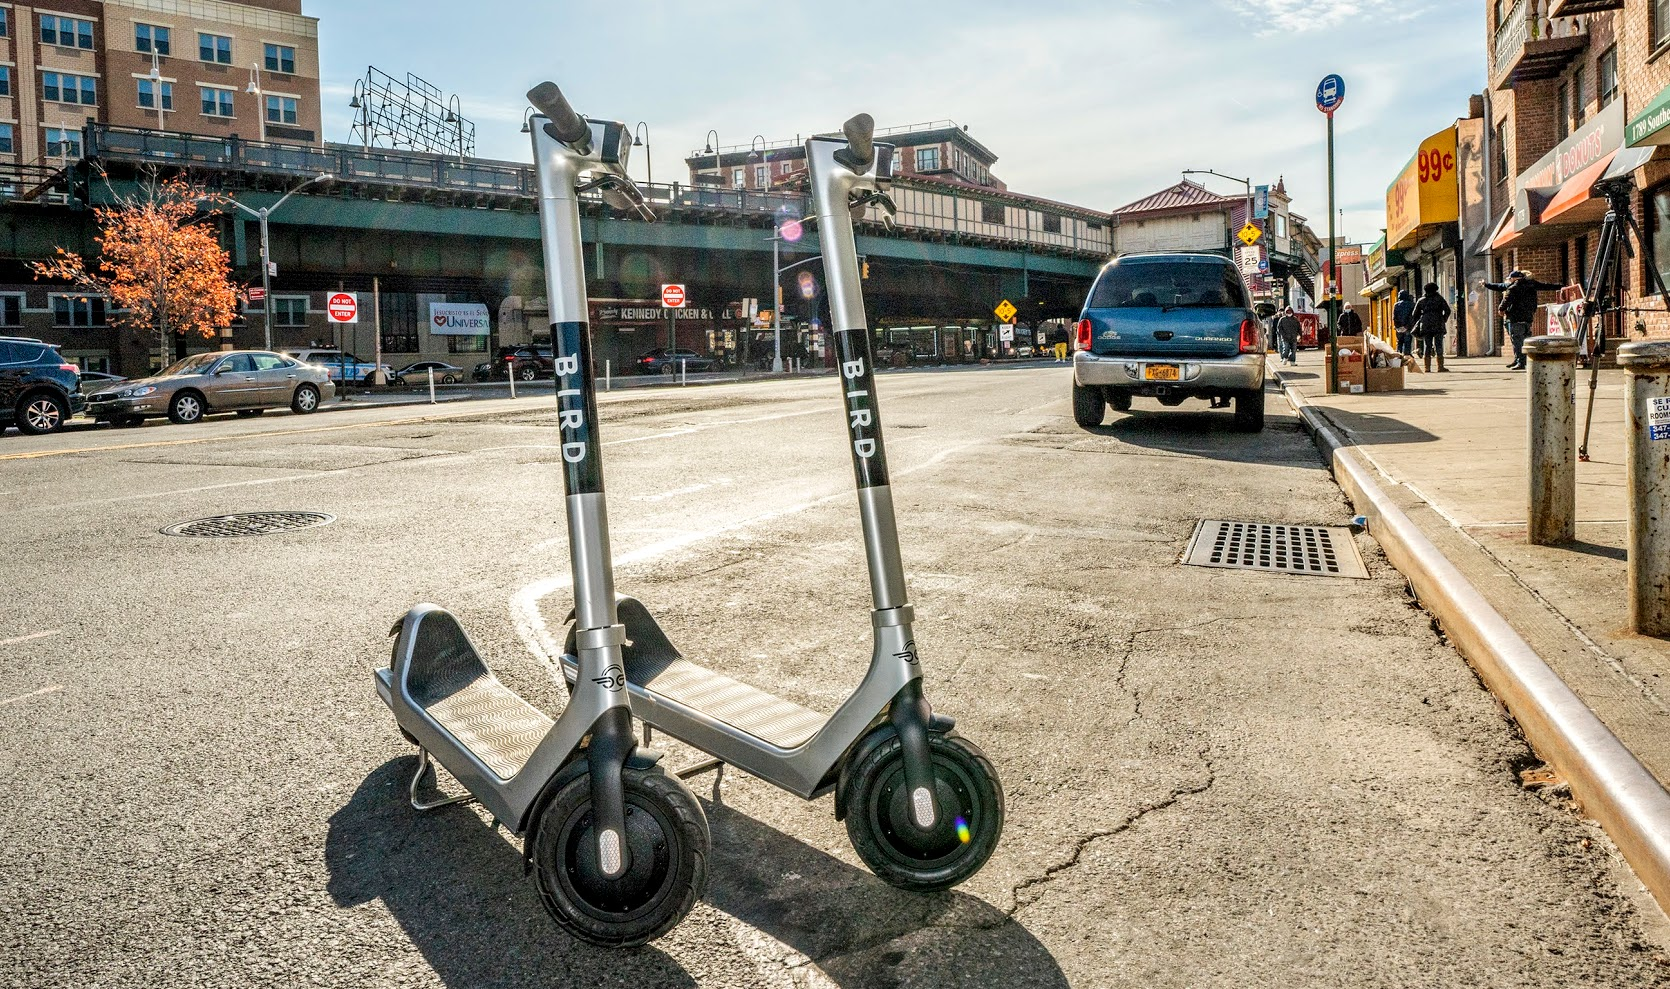 Two Bird scooters parked near sidewalk curb